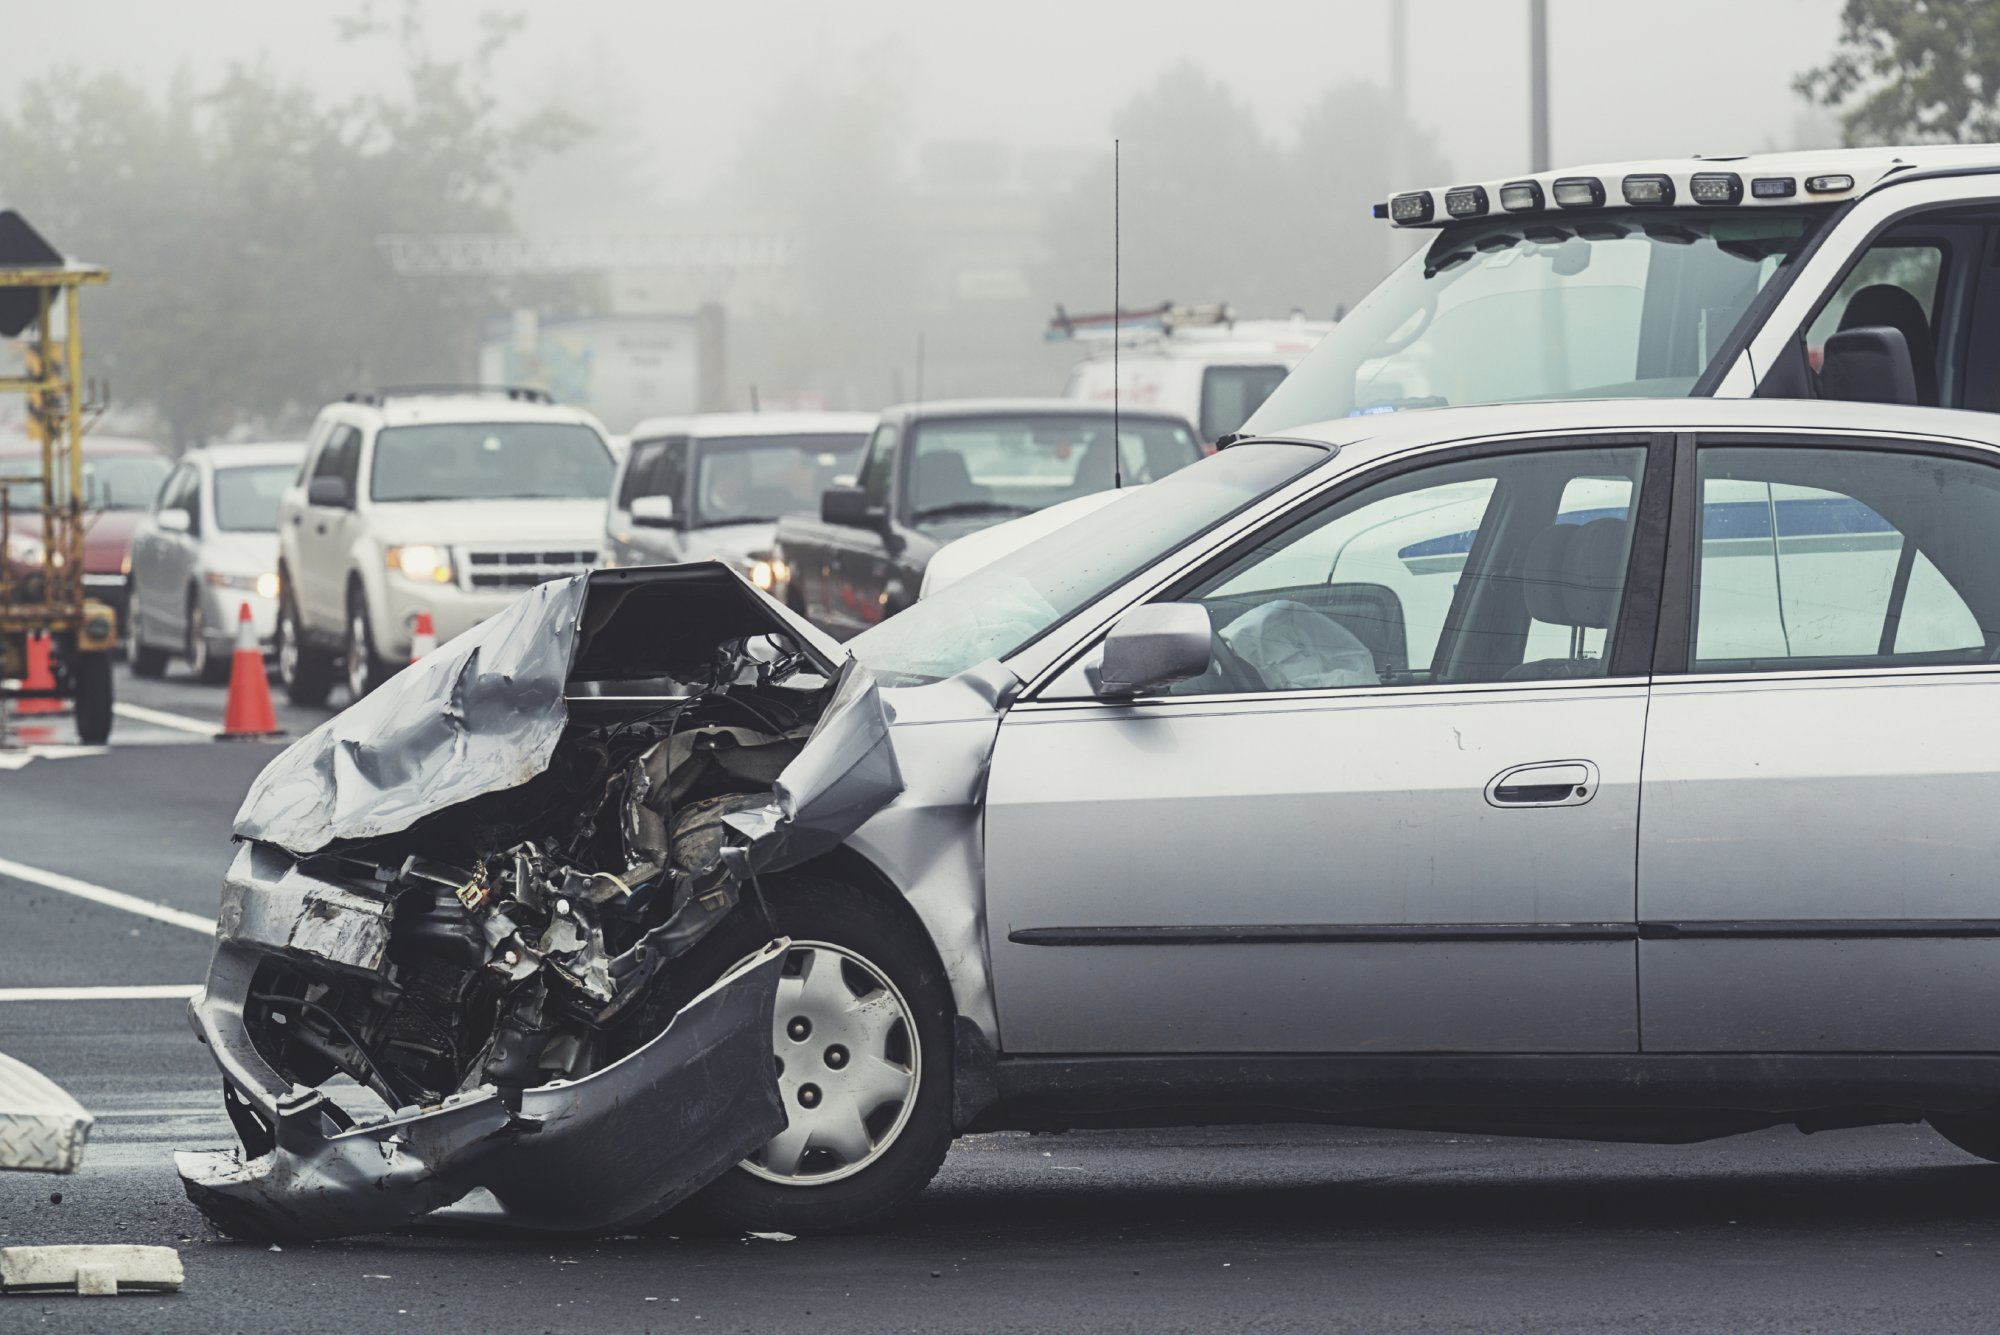 Front of car destroyed in accident | Eisbrouch Marsh can help if you were hurt in a wreck